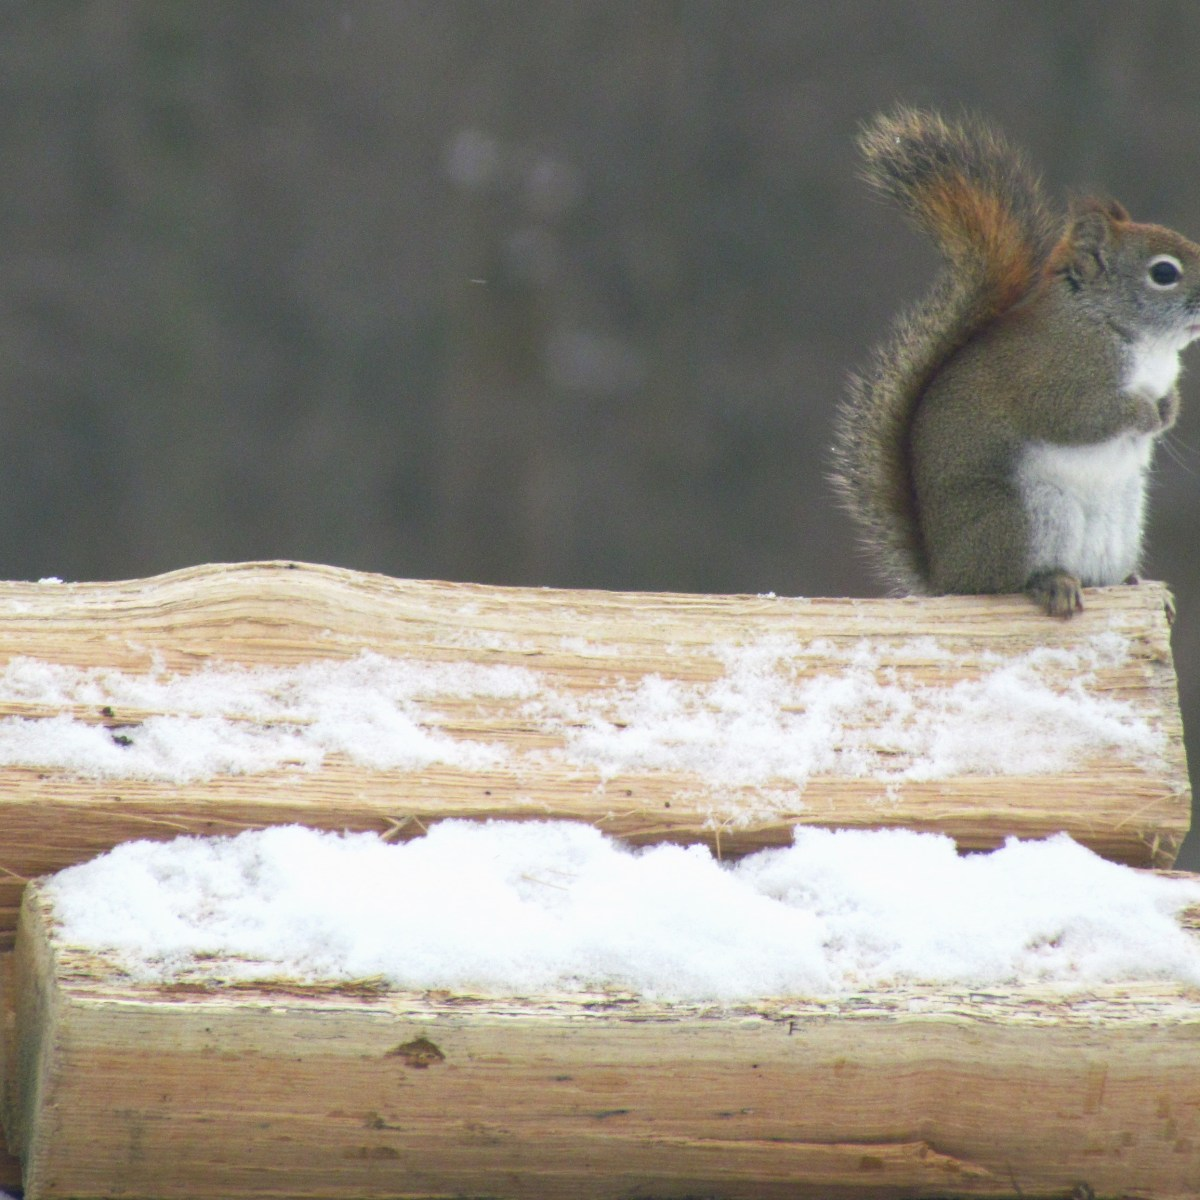 A red squirrel stands on a snow-covered log.